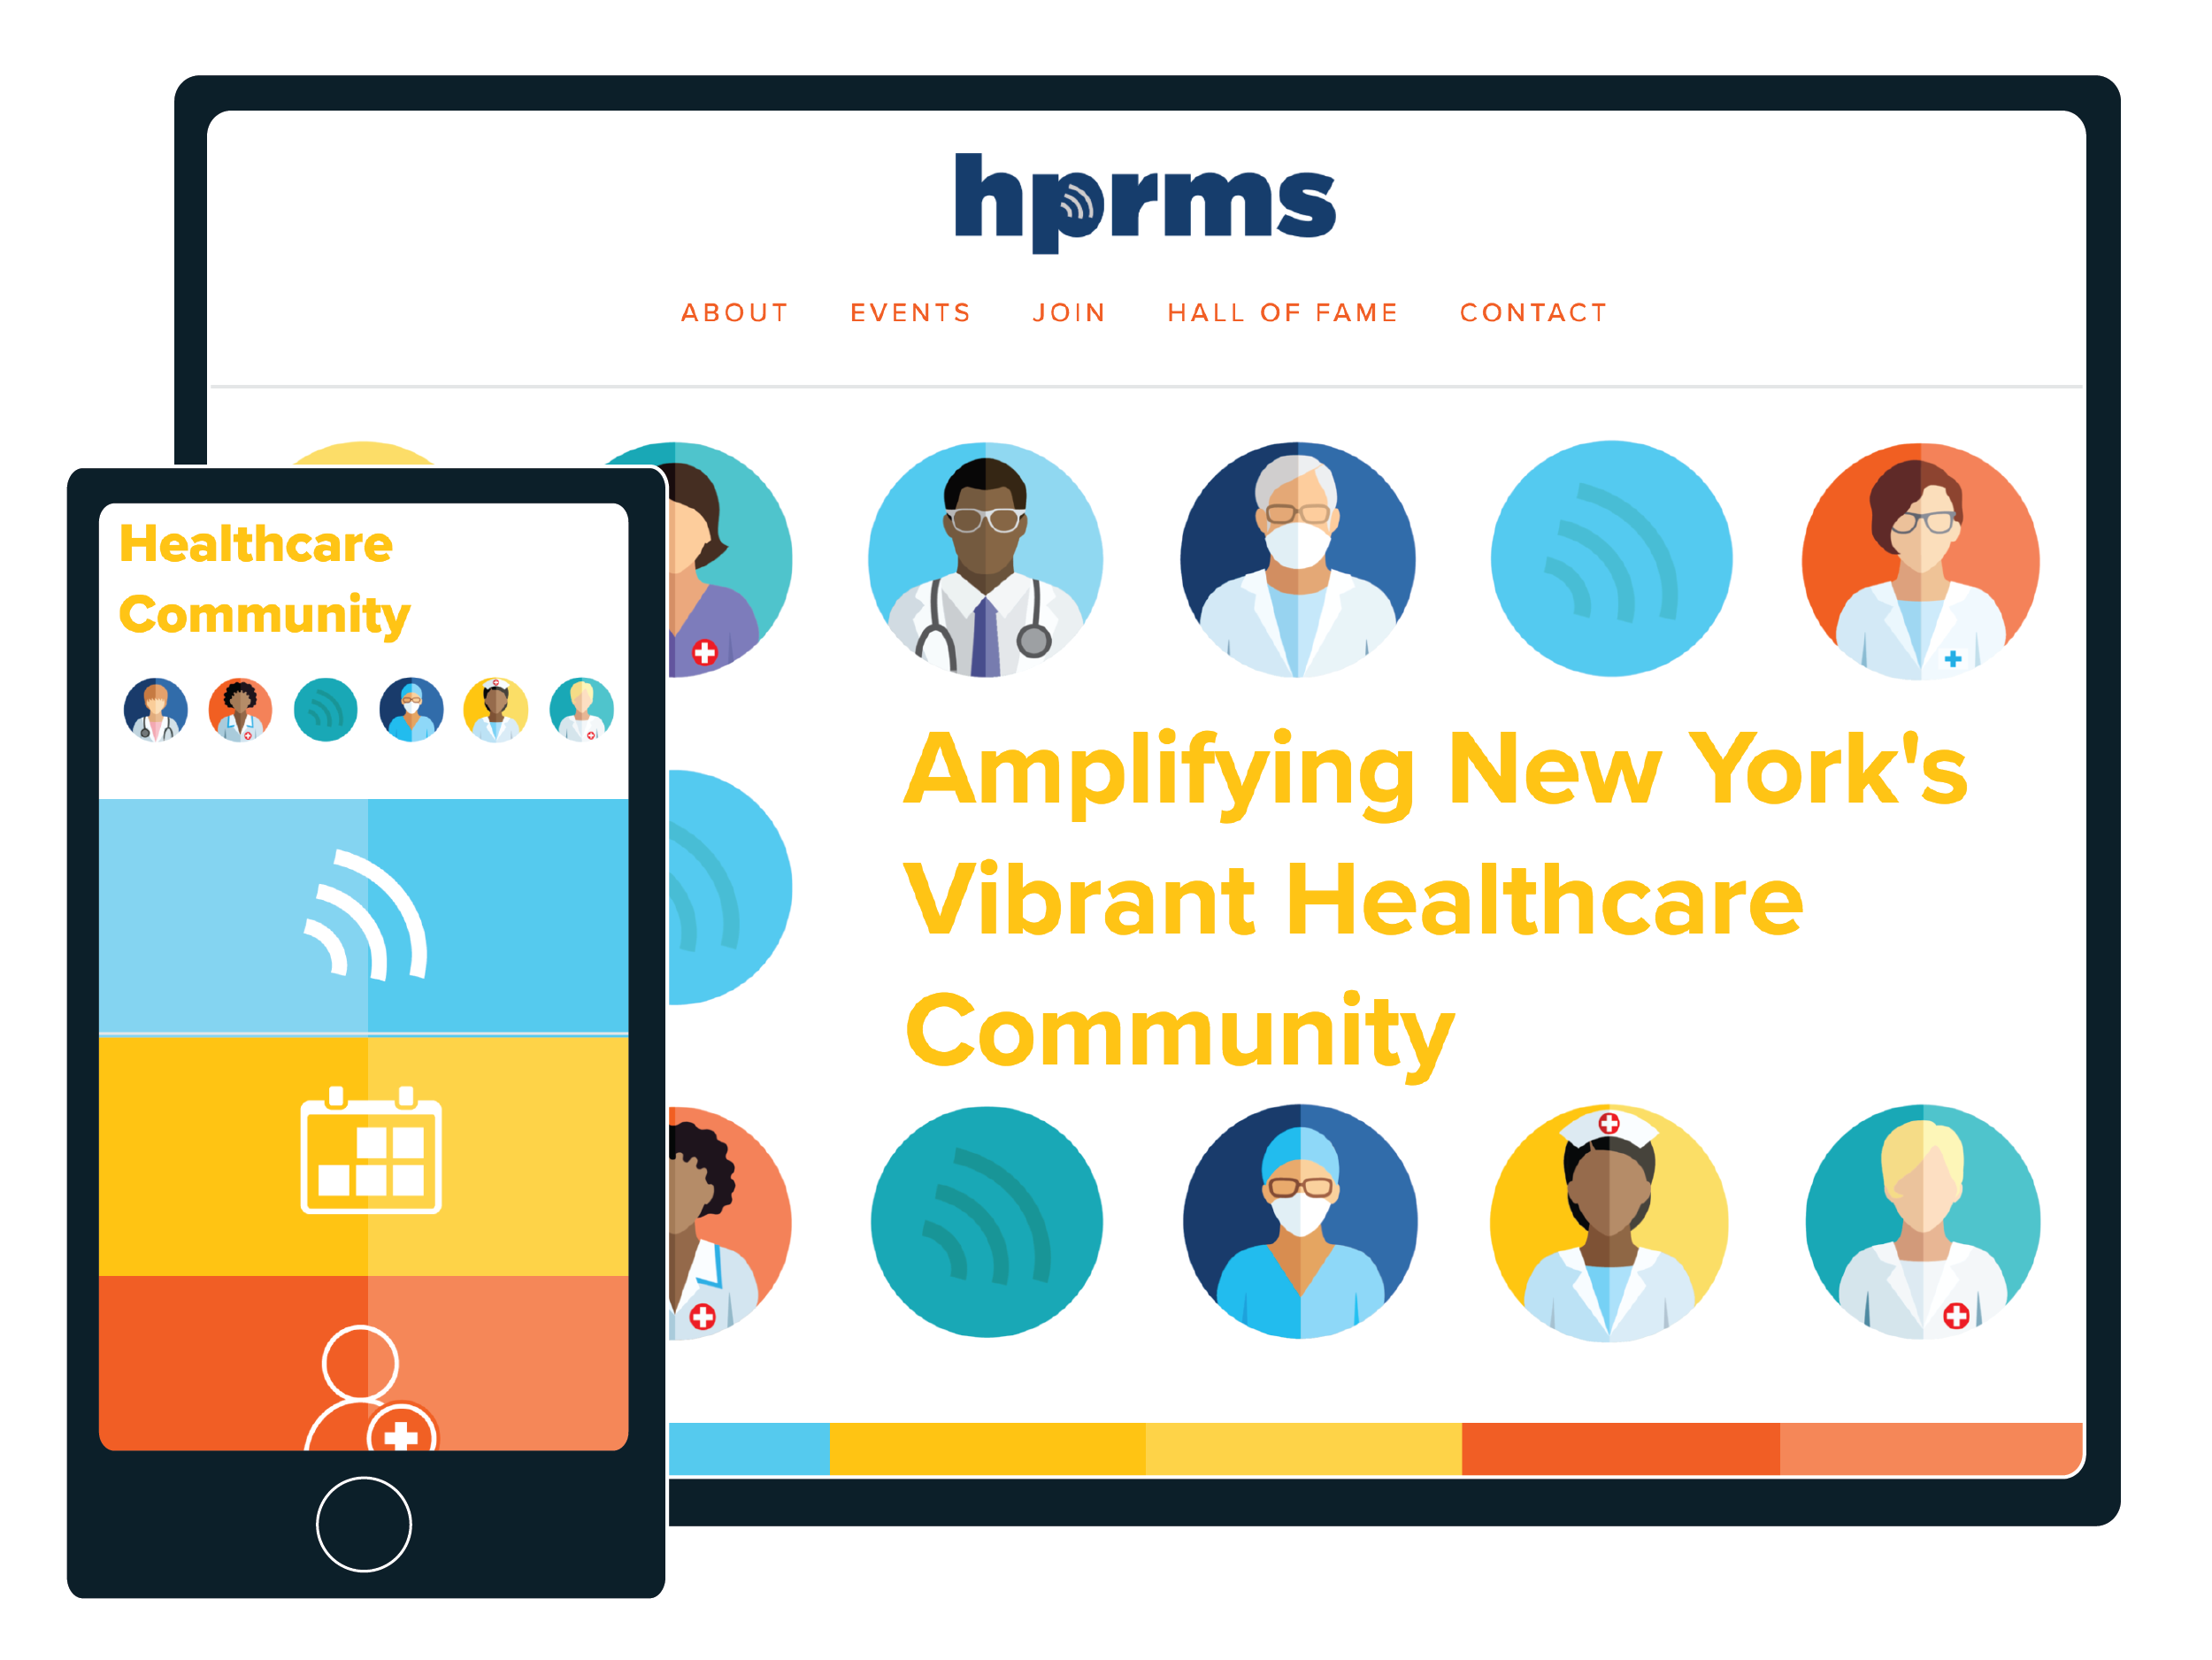 HPRMS